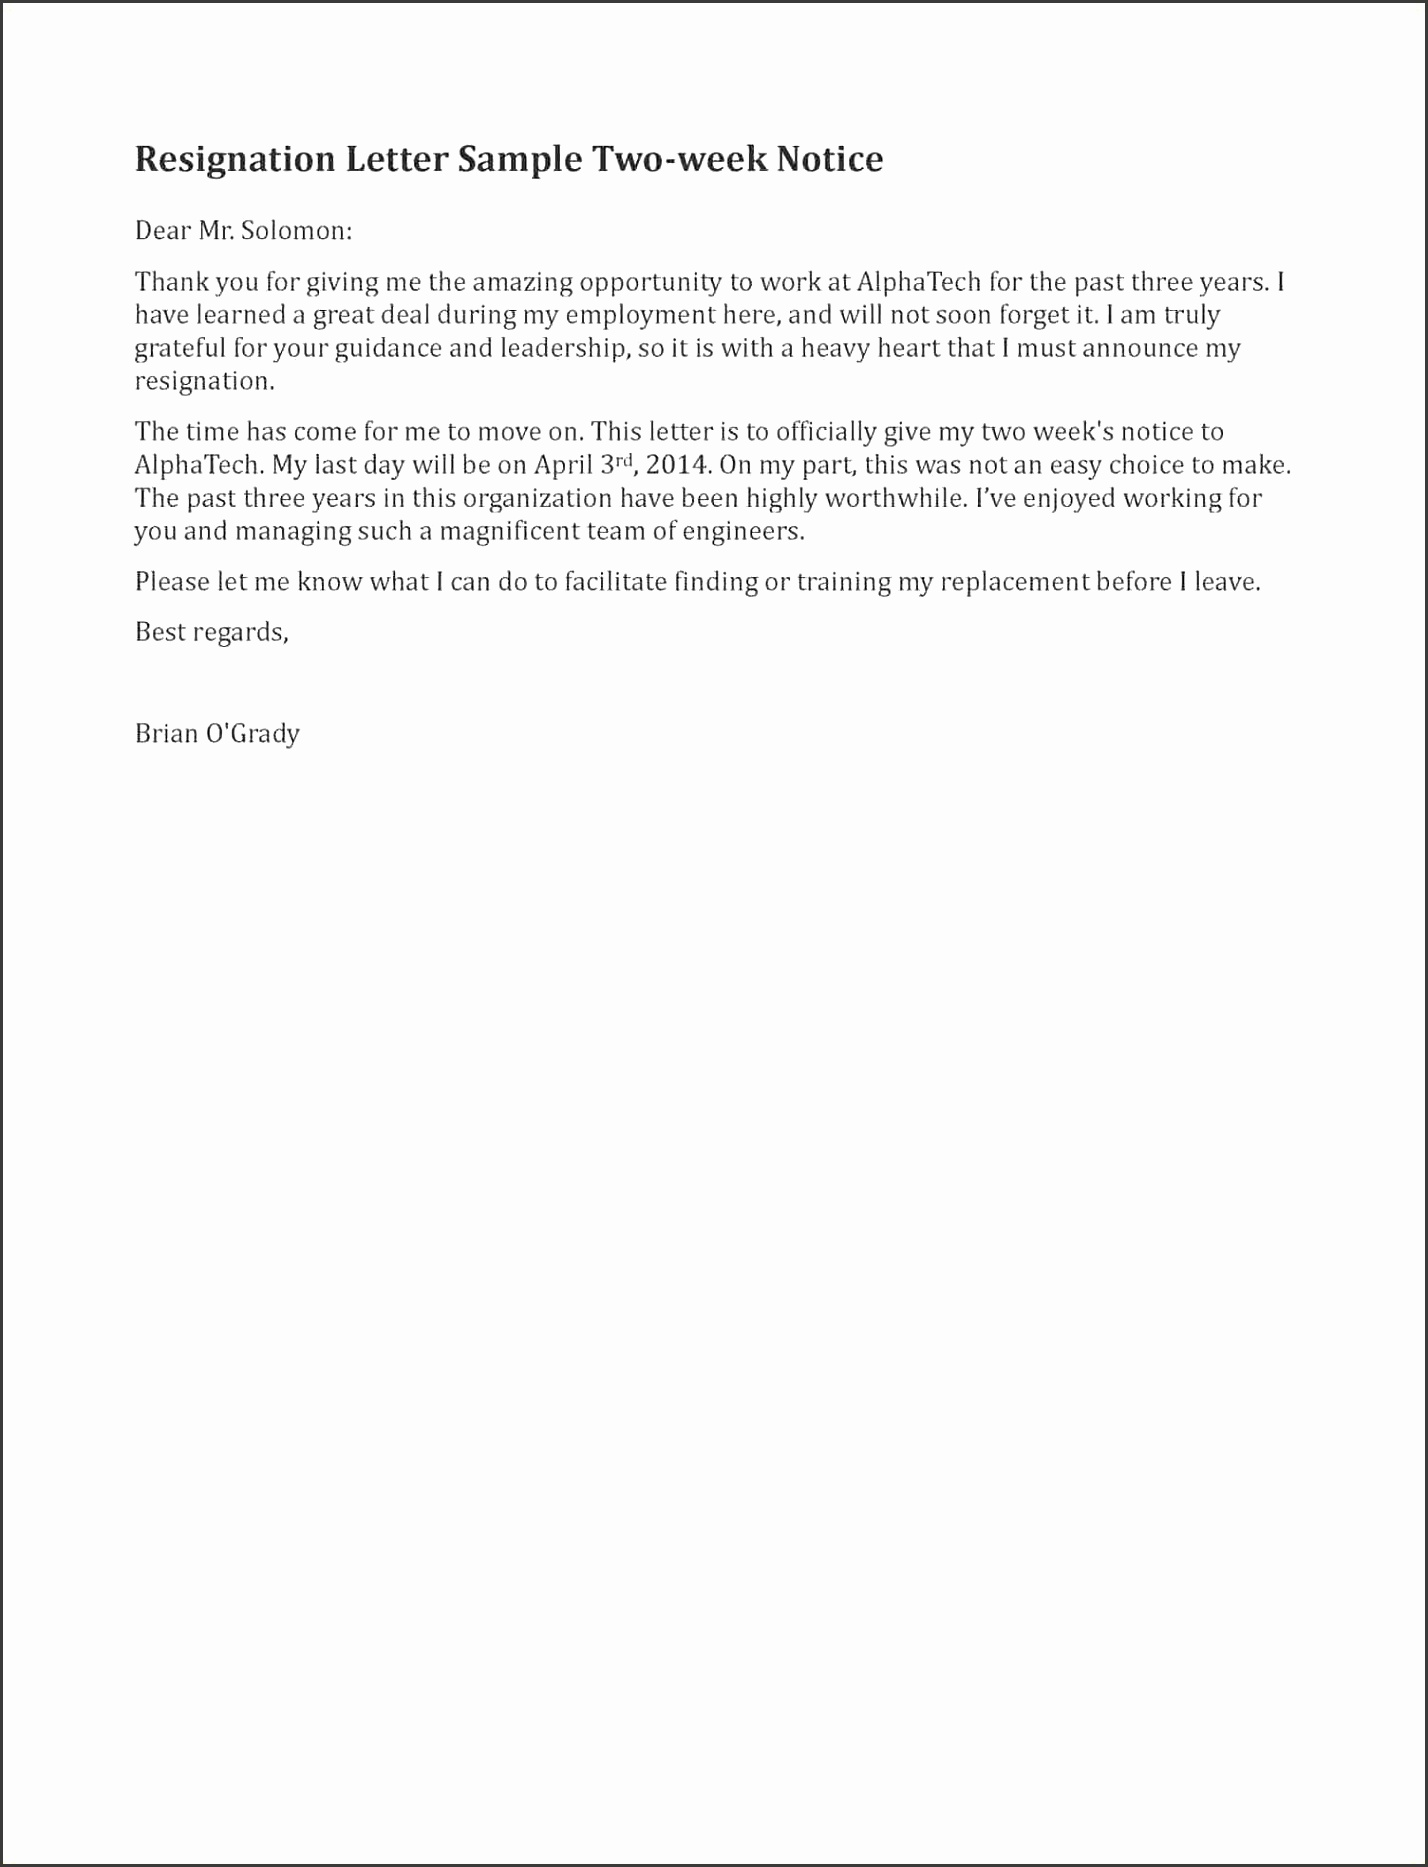 Sample – Resignation Two Weeks Notice 2